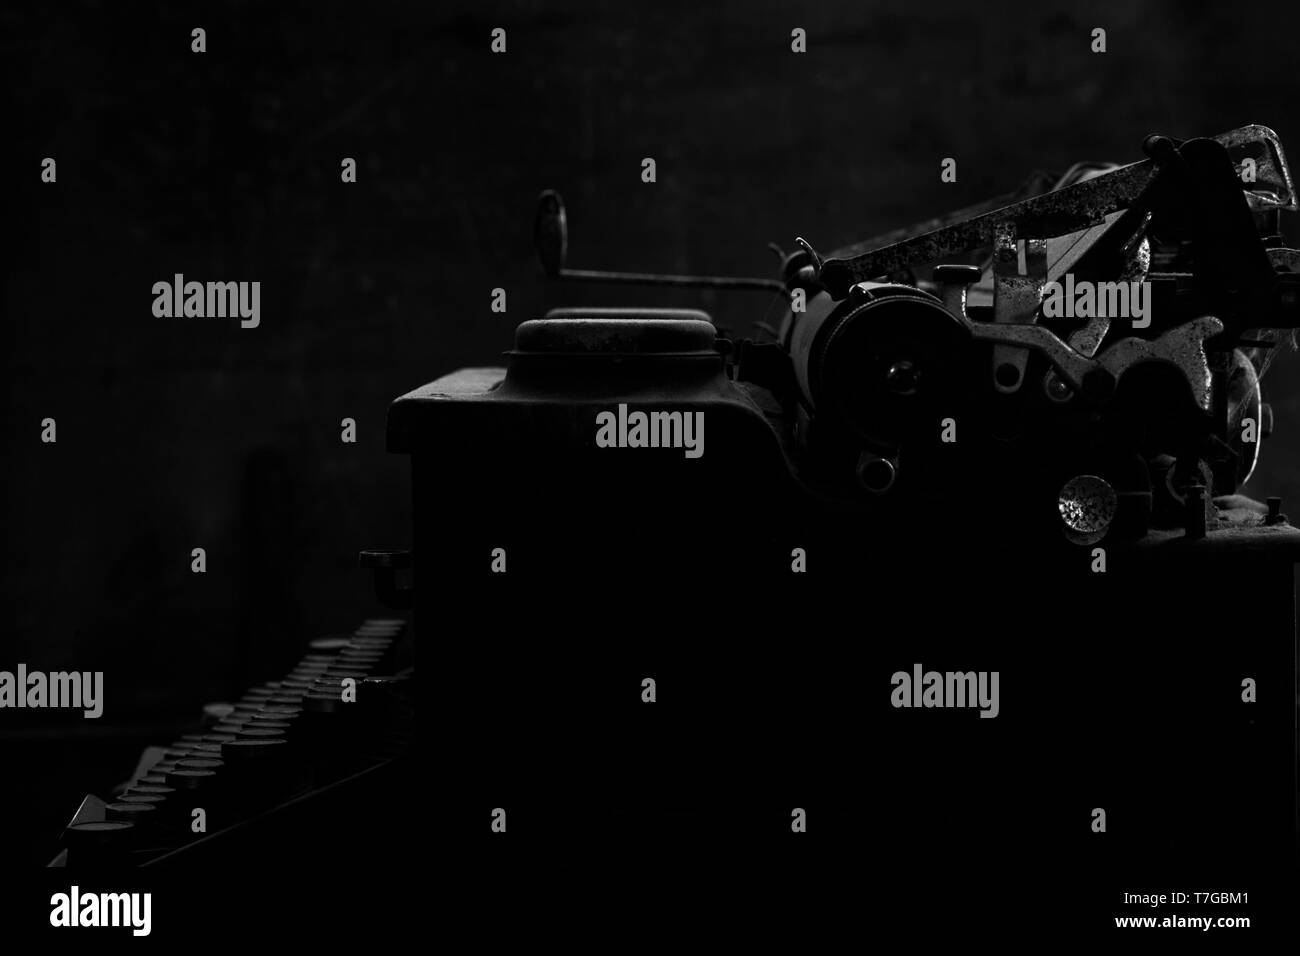 Old vintage typewriter - Stock Image